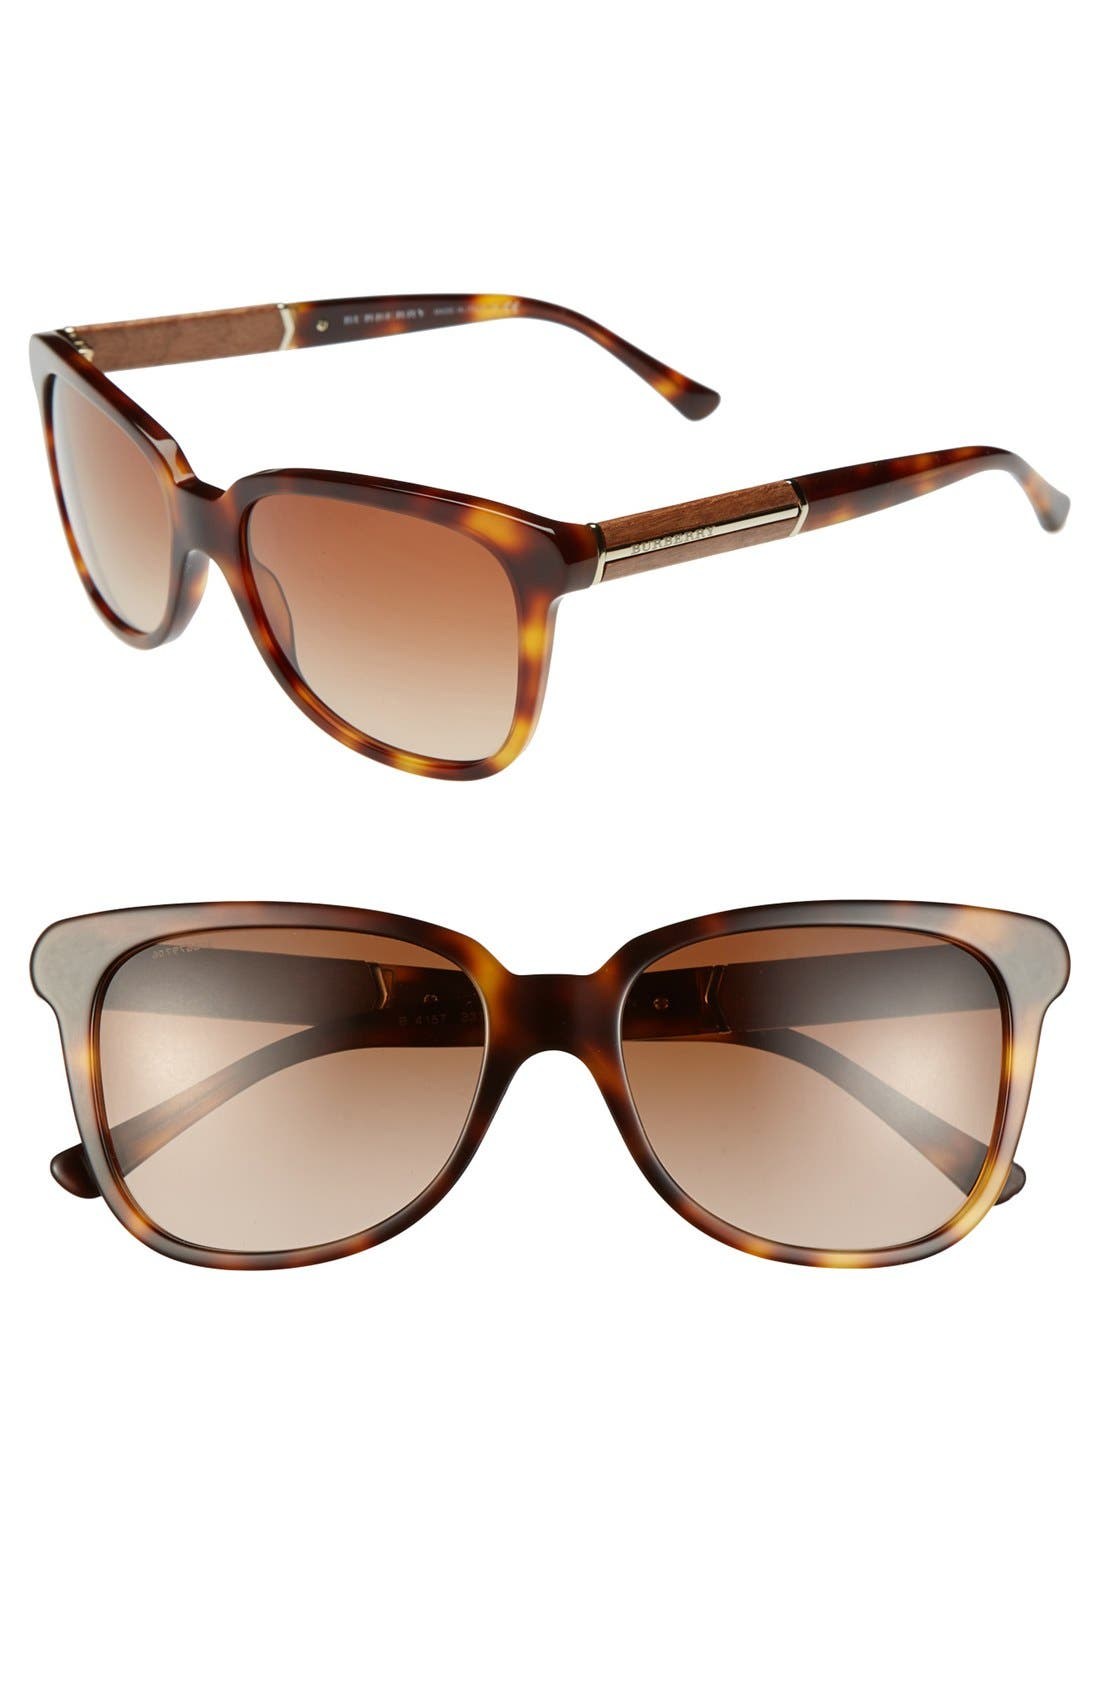 Main Image - Burberry Square 56mm Sunglasses